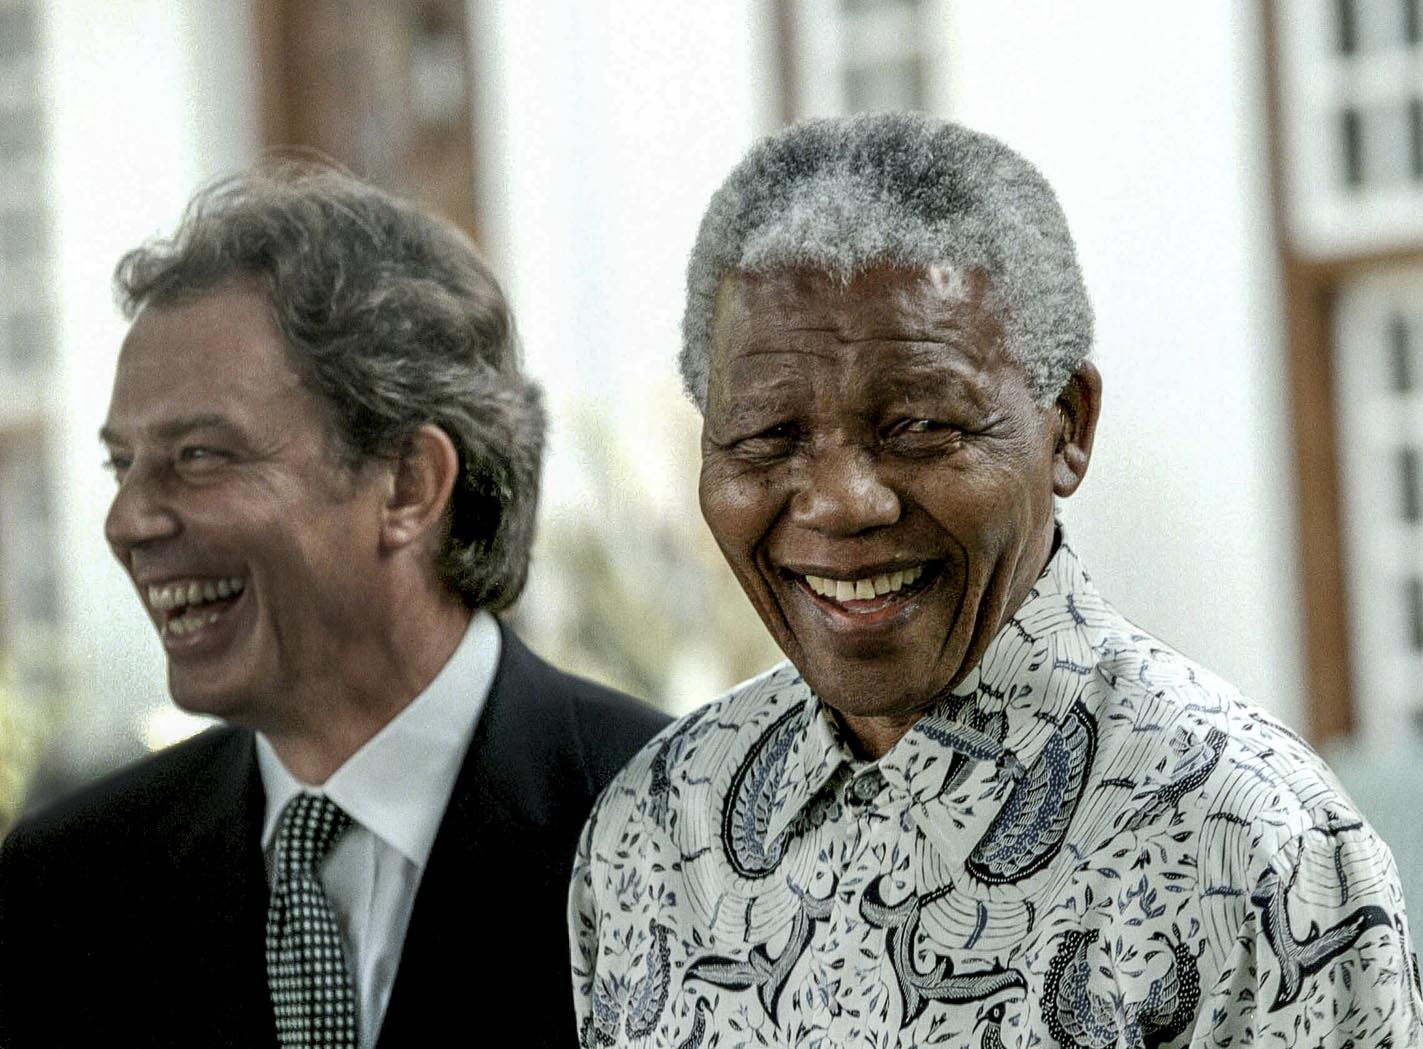 990108SH11:SAFRICA:GOVERNMENT:PERSONALITY:JAN99 - President Nelson Mandela laughing with British Prime Minister Tony Blair at a press conference at Mahlamba Ndlopfu, the Presidents residence in Pretoria(Photo by Shaun Harris/www.afrikamoves.co.za) Special events foreign affairs